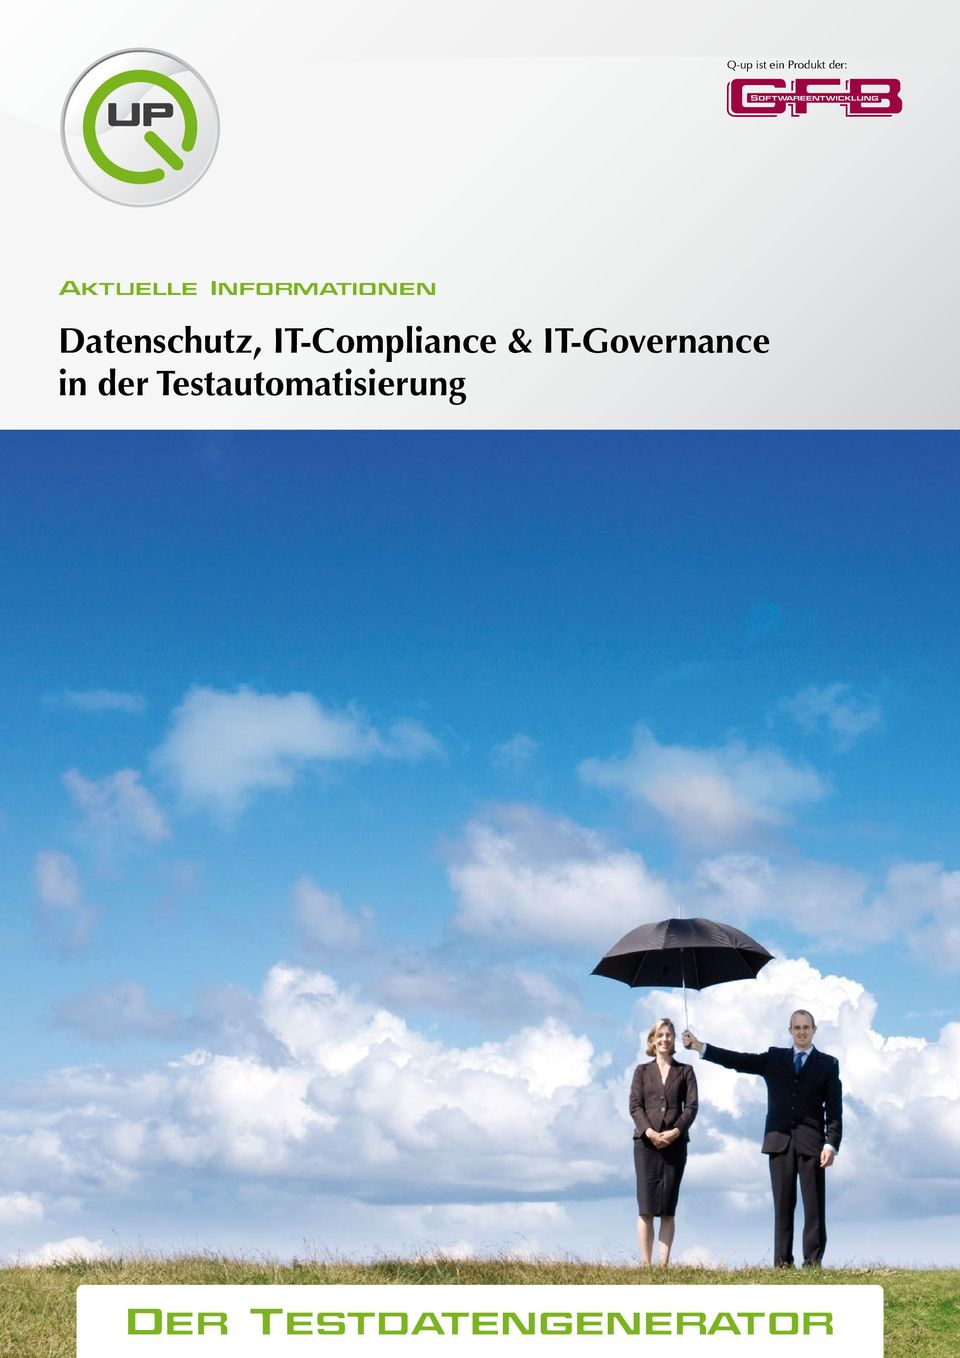 IT-Compliance & IT-Governance in der